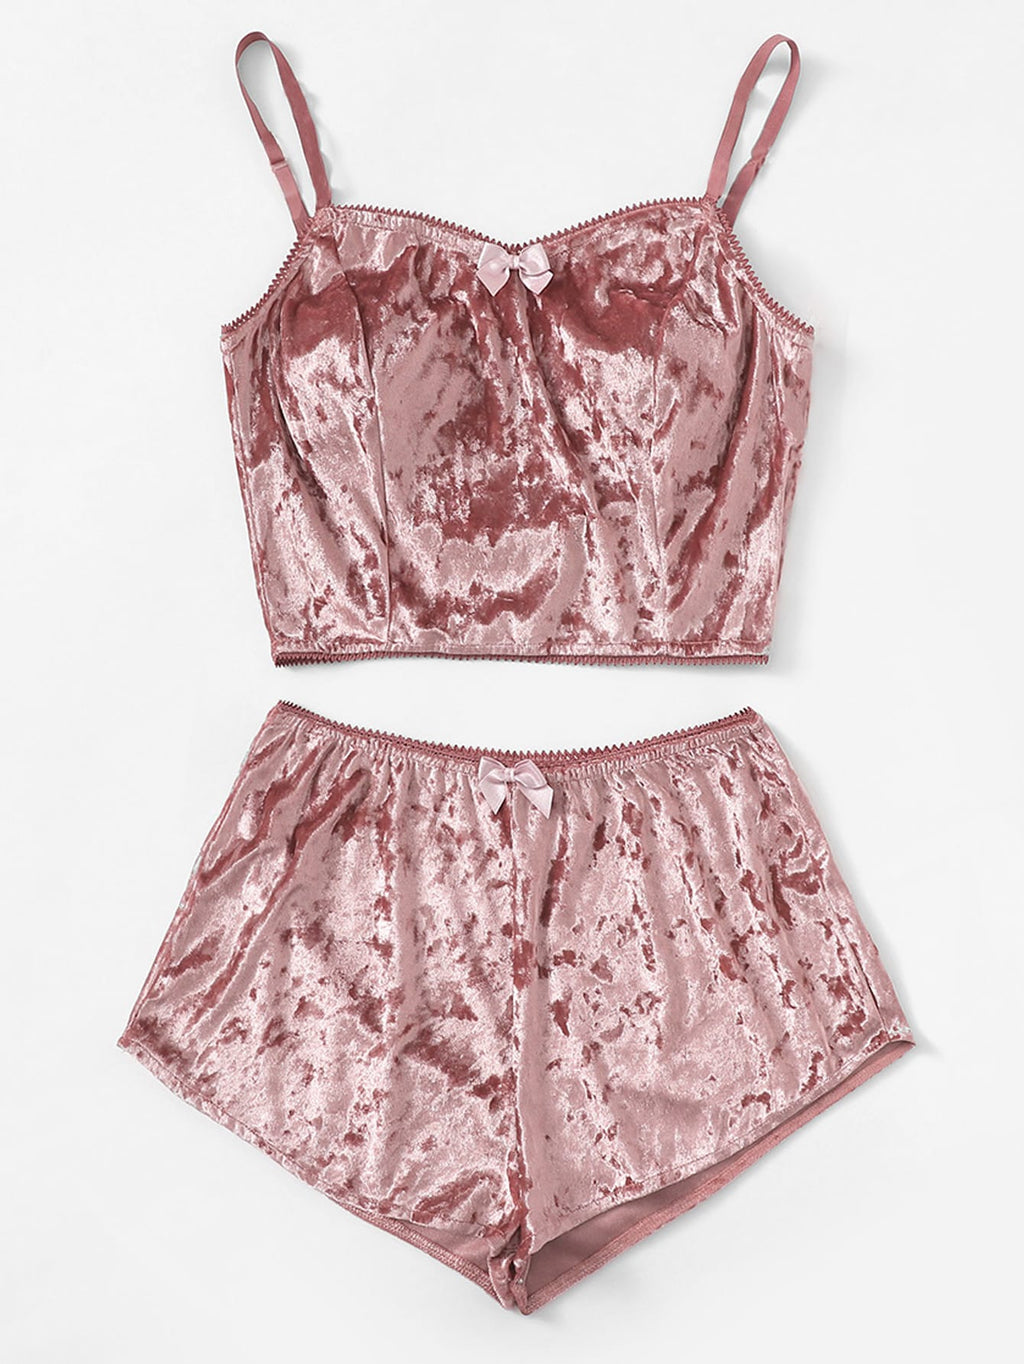 Crushed Velvet Cami PJ Set - Pink